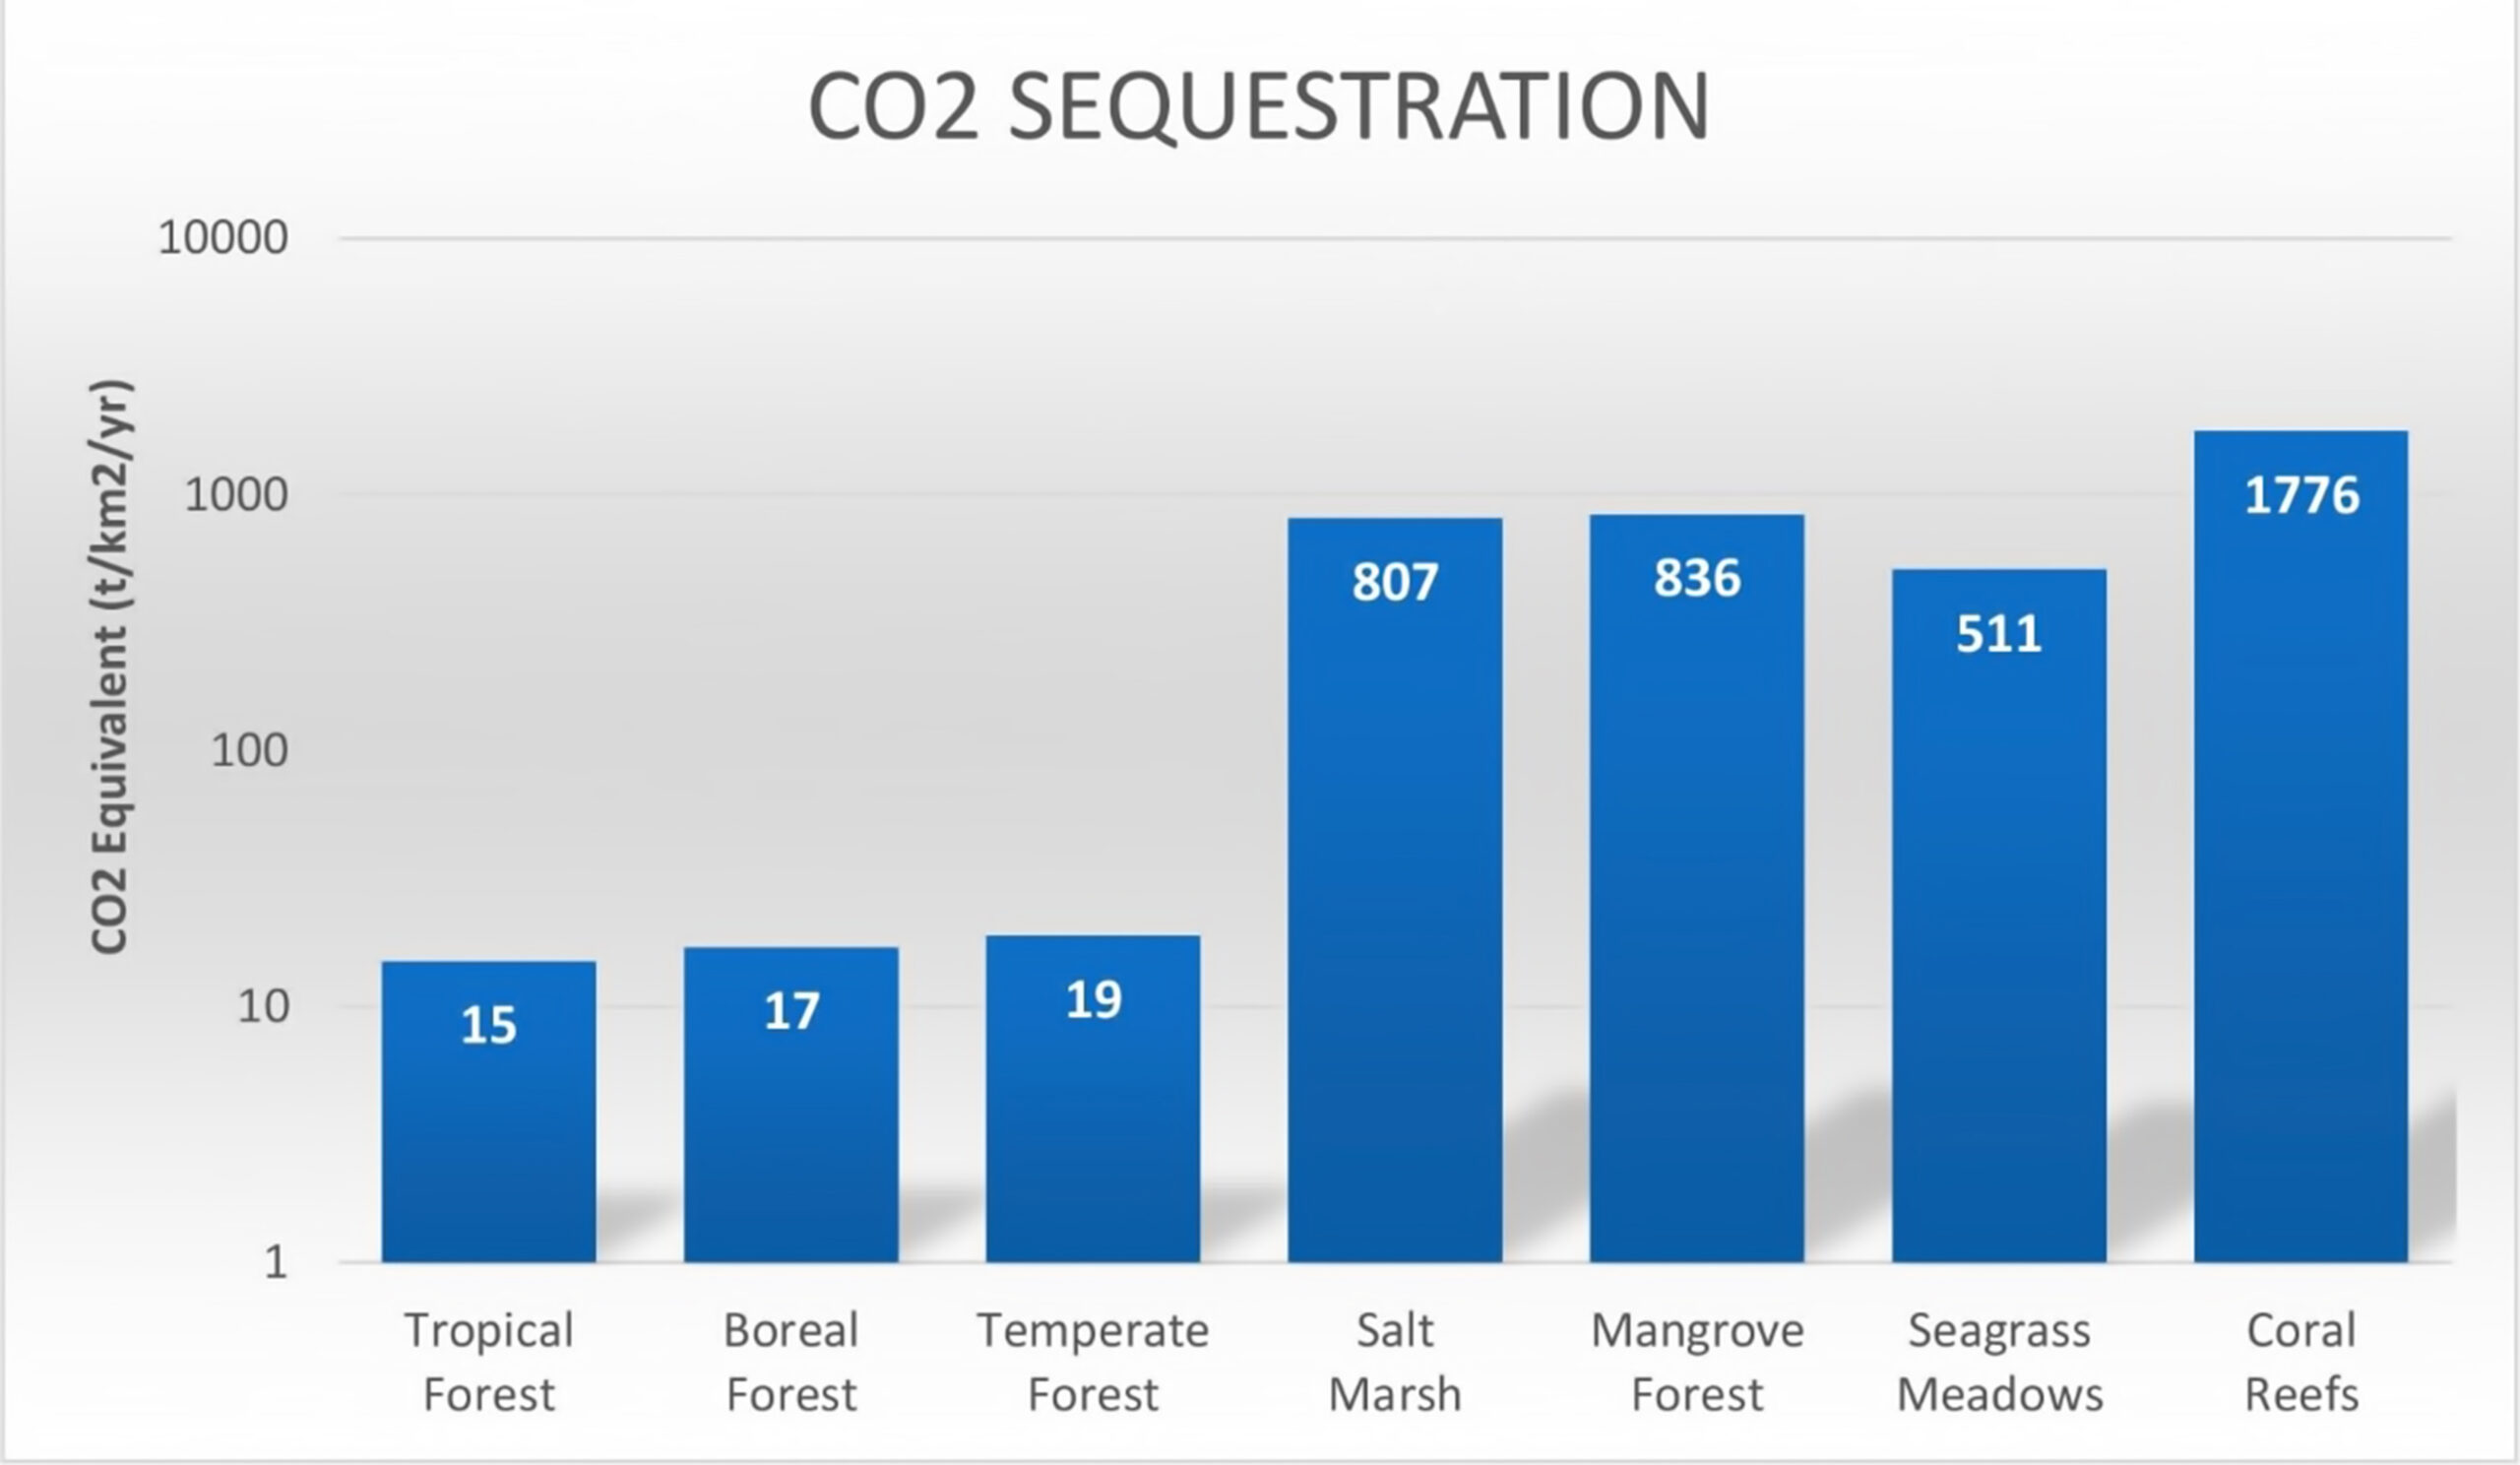 Mean long-term rates of carbon sequestration in CO2-Equivalents(tCO2/km2/yr) in soils in terrestrial forests, sediments in coastal vegetated ecosystems, and coral reefs. Rates do not include carbon liberated through calcification in these marine environments as these vary widely. Note the logarithmic scale of the y axis. Original data converted from: McLeod et al. 2011, Smith and Kinsey, 1976; Buddemeier and Smith, 1988; Kinsey and Hopley, 1991.